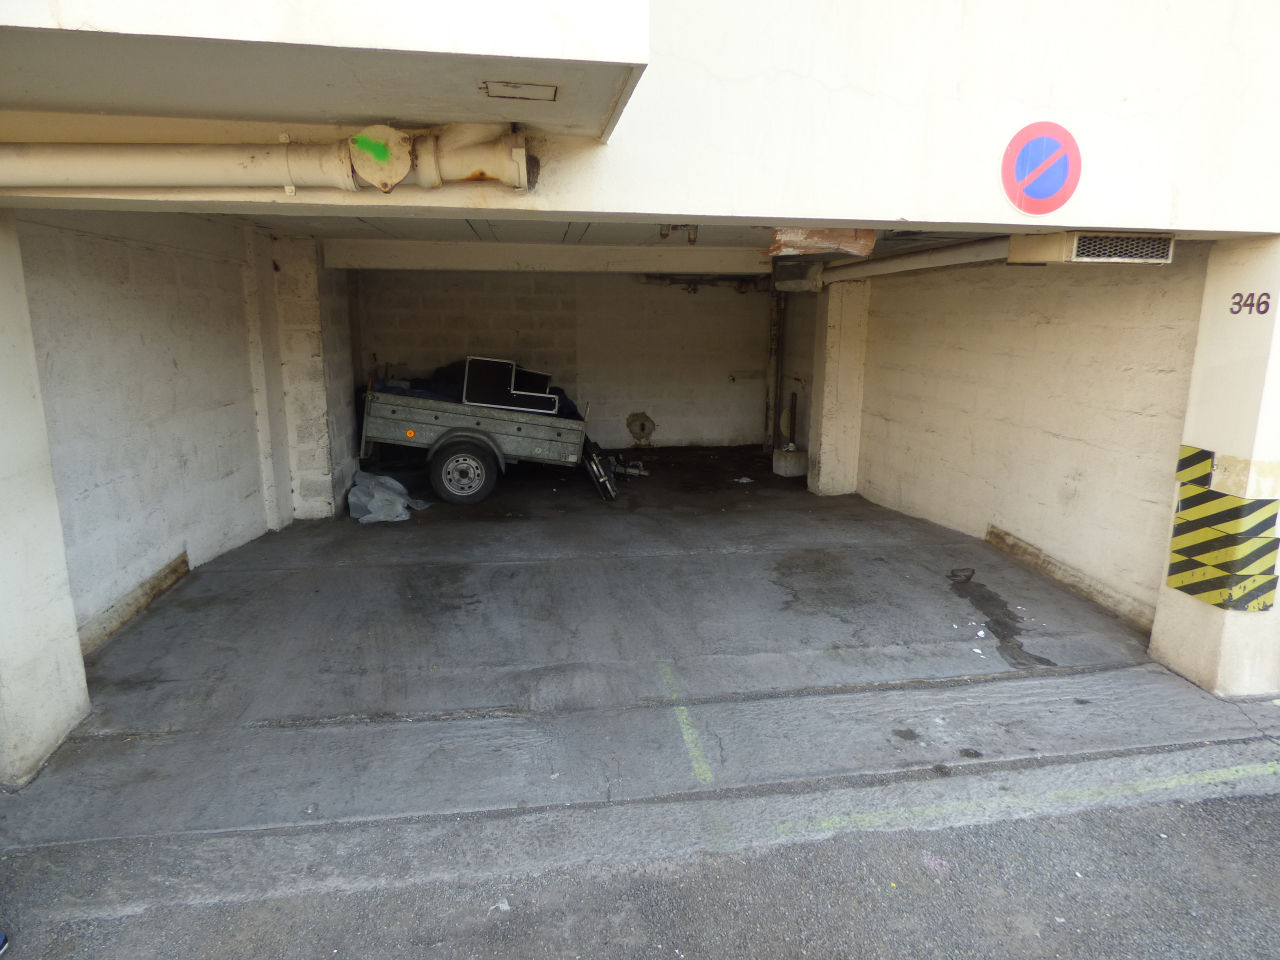 Vente garage parking nice 06000 sur le partenaire for Garage parking nice